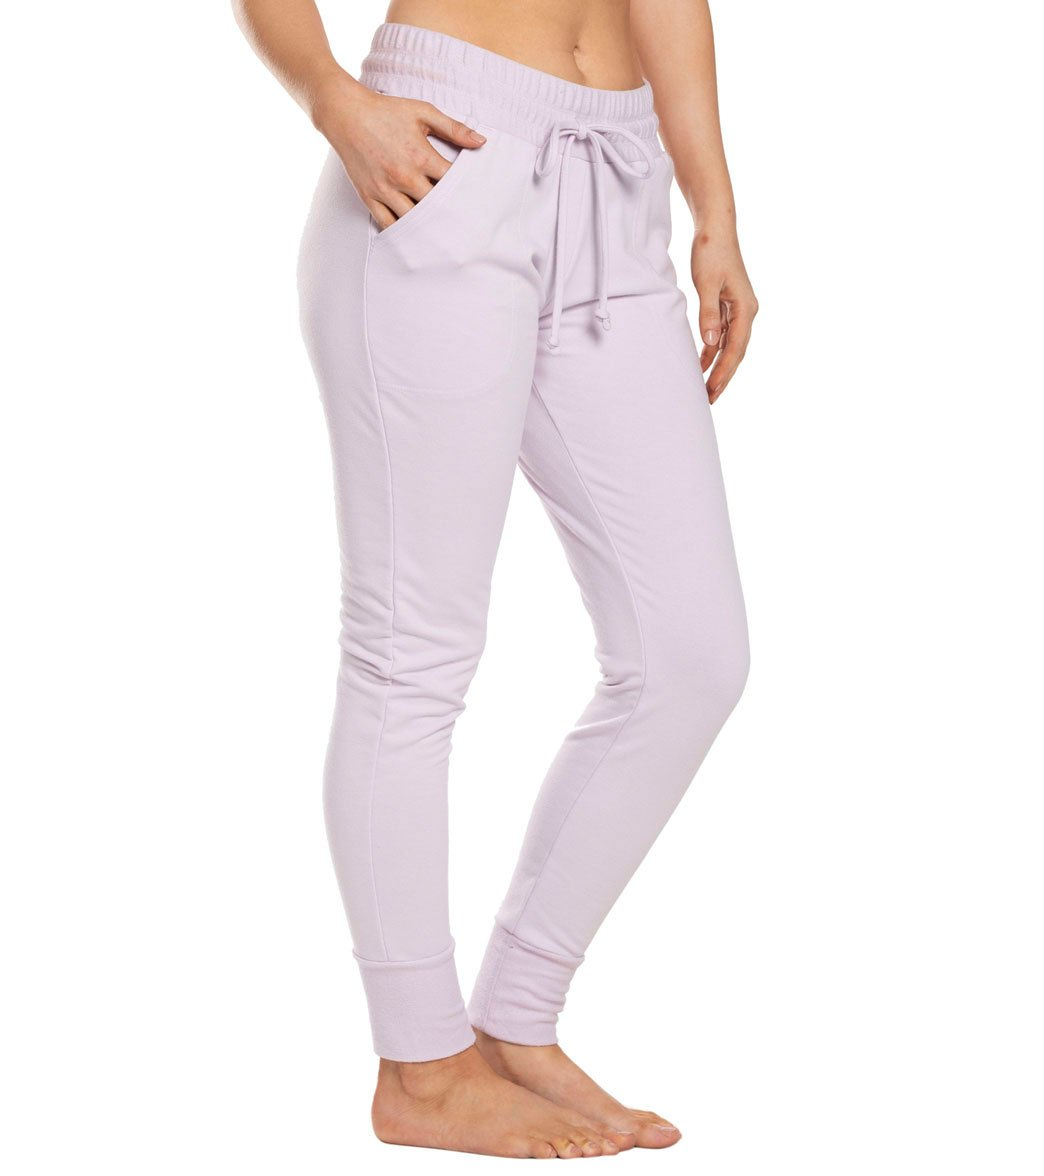 Free People Movement Sunny Skinny Sweat Pants - Lavender Cotton